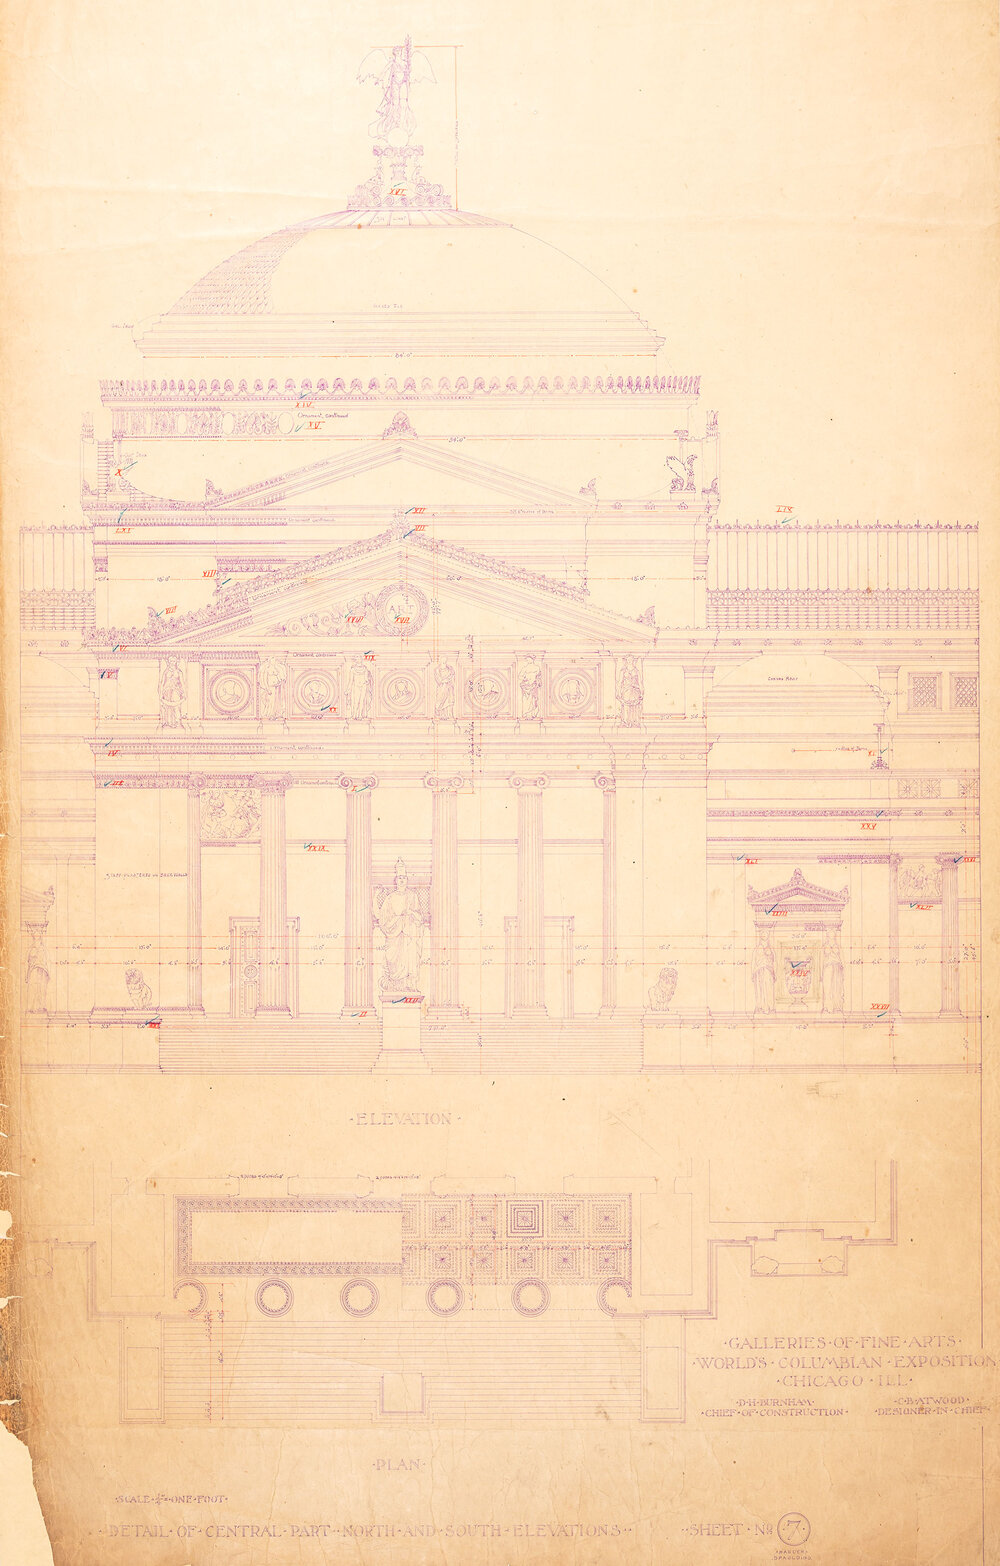 Galleries of Fine Arts, World's Columbian Exposition: Sheet, No. 7, Detail of central part north and south elevations, Daniel H. Burnham, Charles B. Atwood, 1891.  Chicago Public Library, Chicago Park District Archive, Drawing CPD409N.